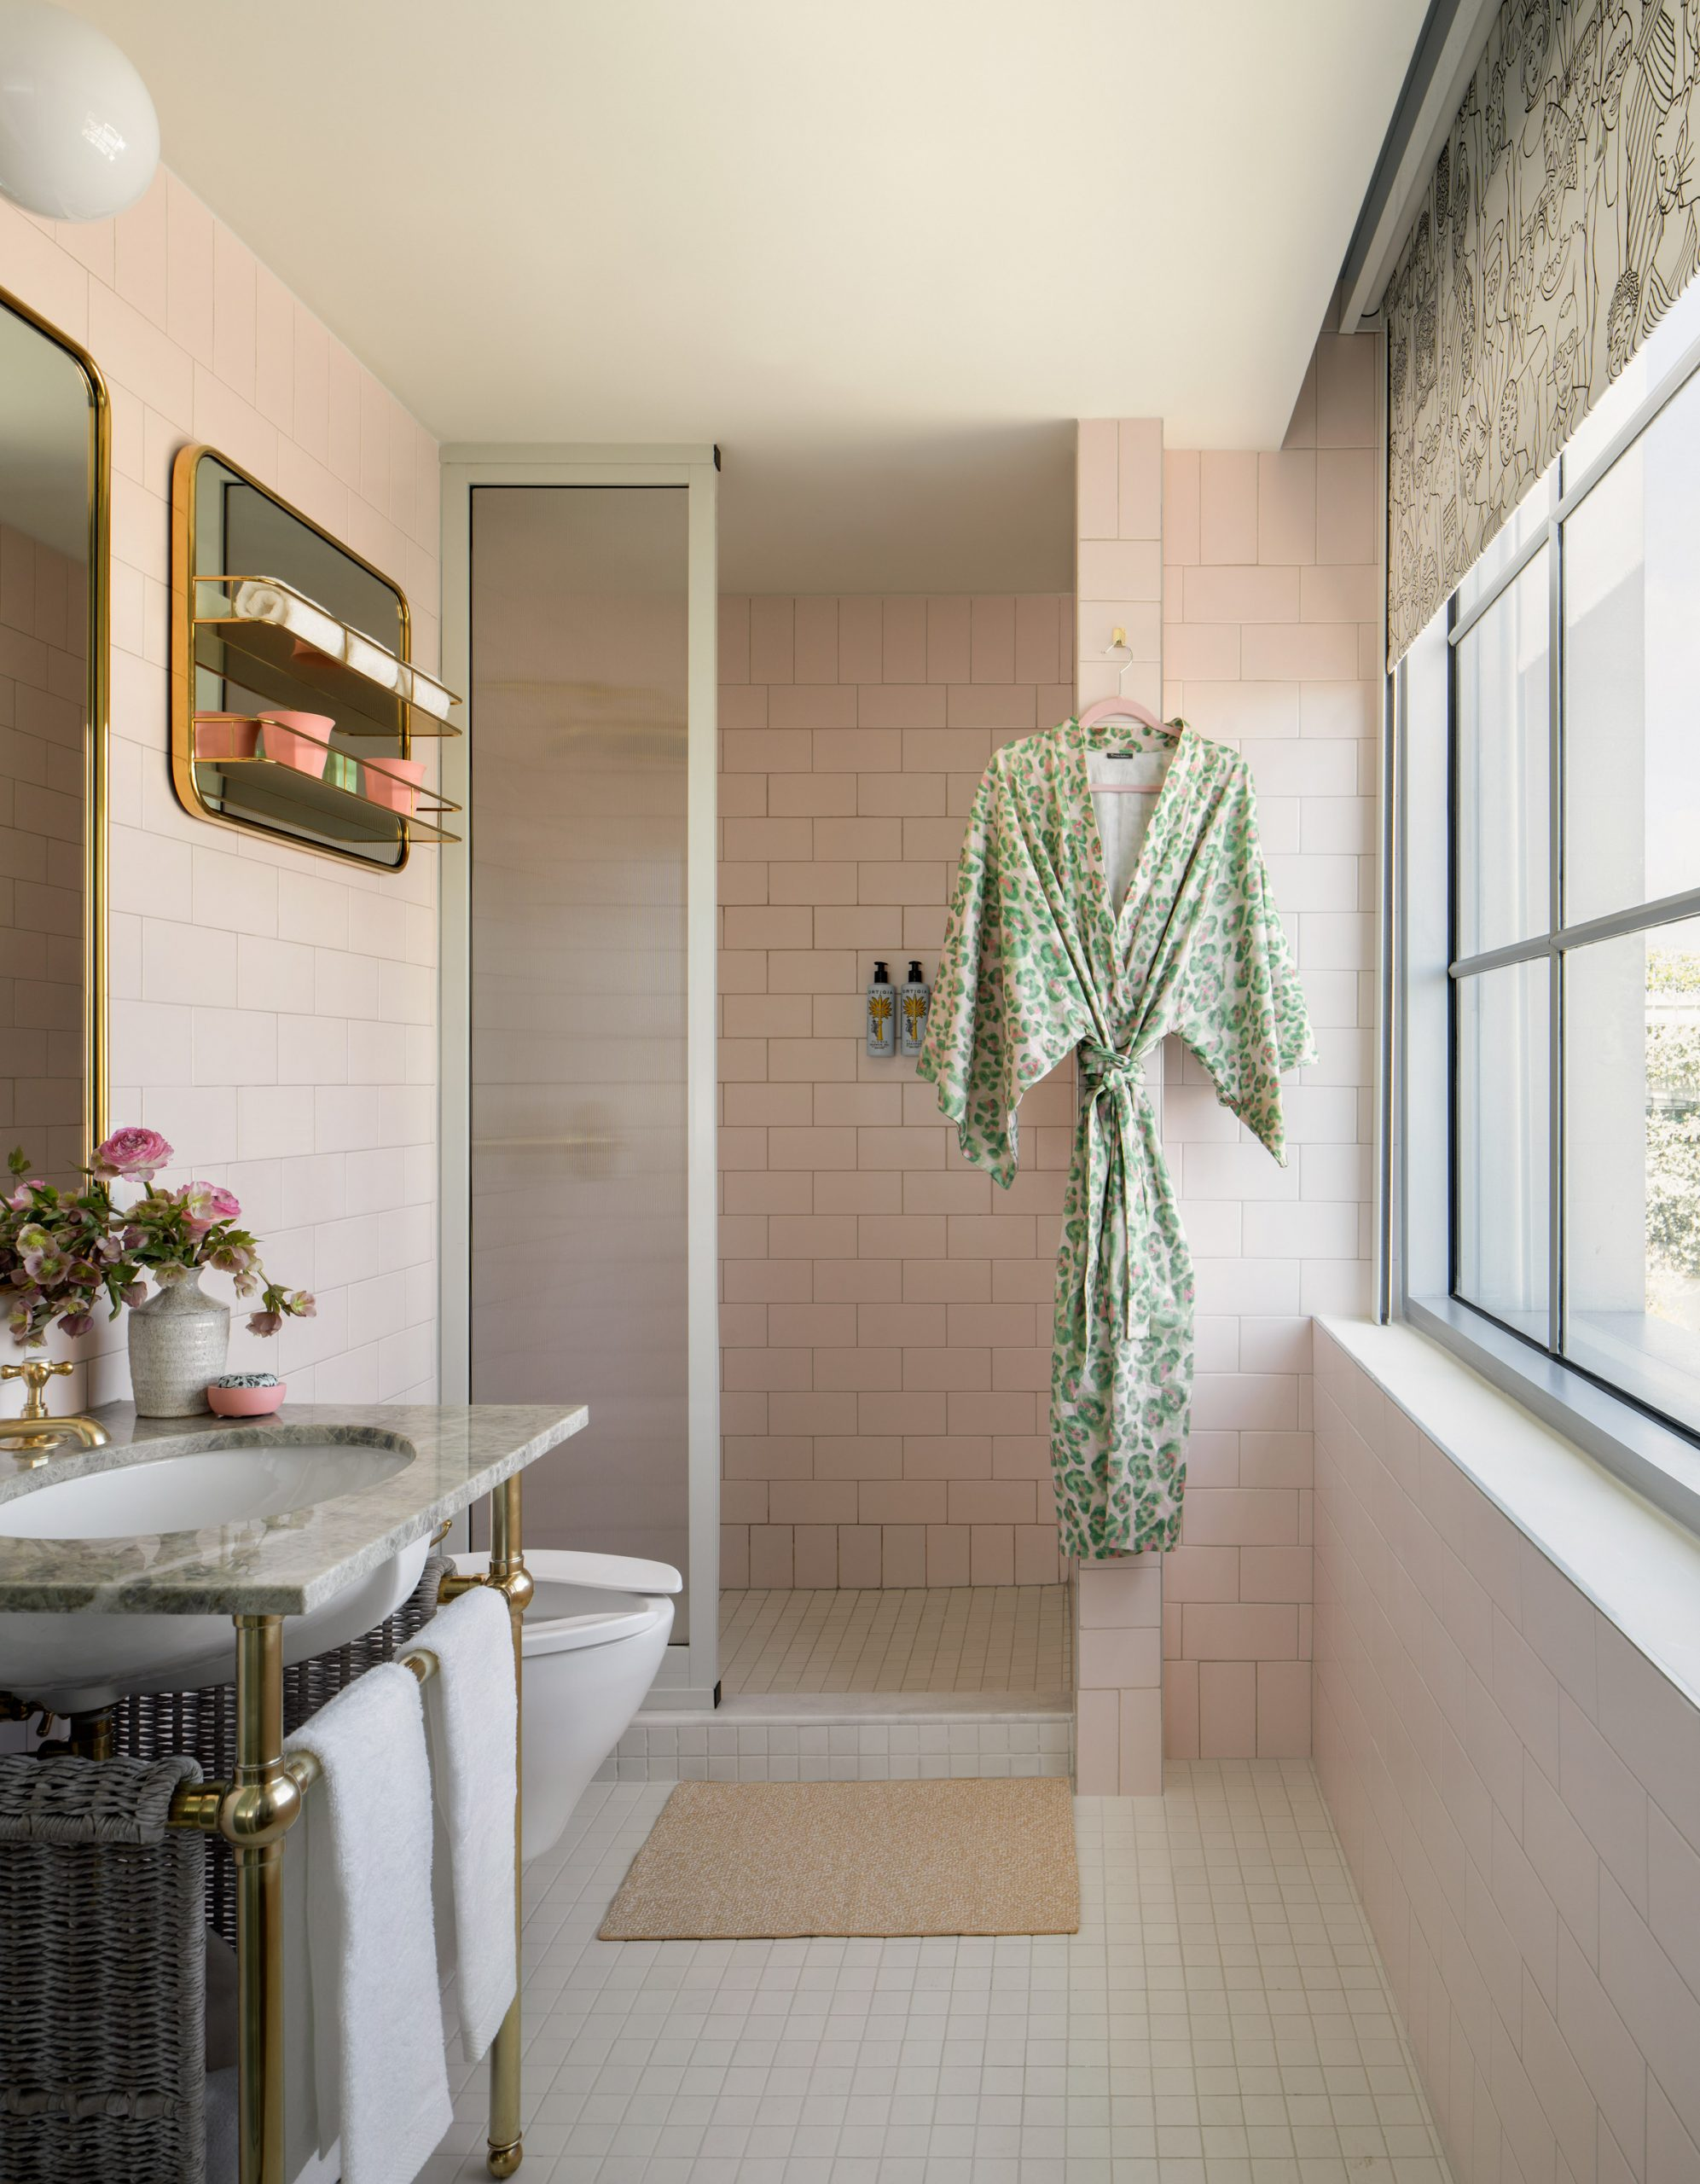 Bathroom in Goodtime Hotel with brass and green stone sink and light pink tiles